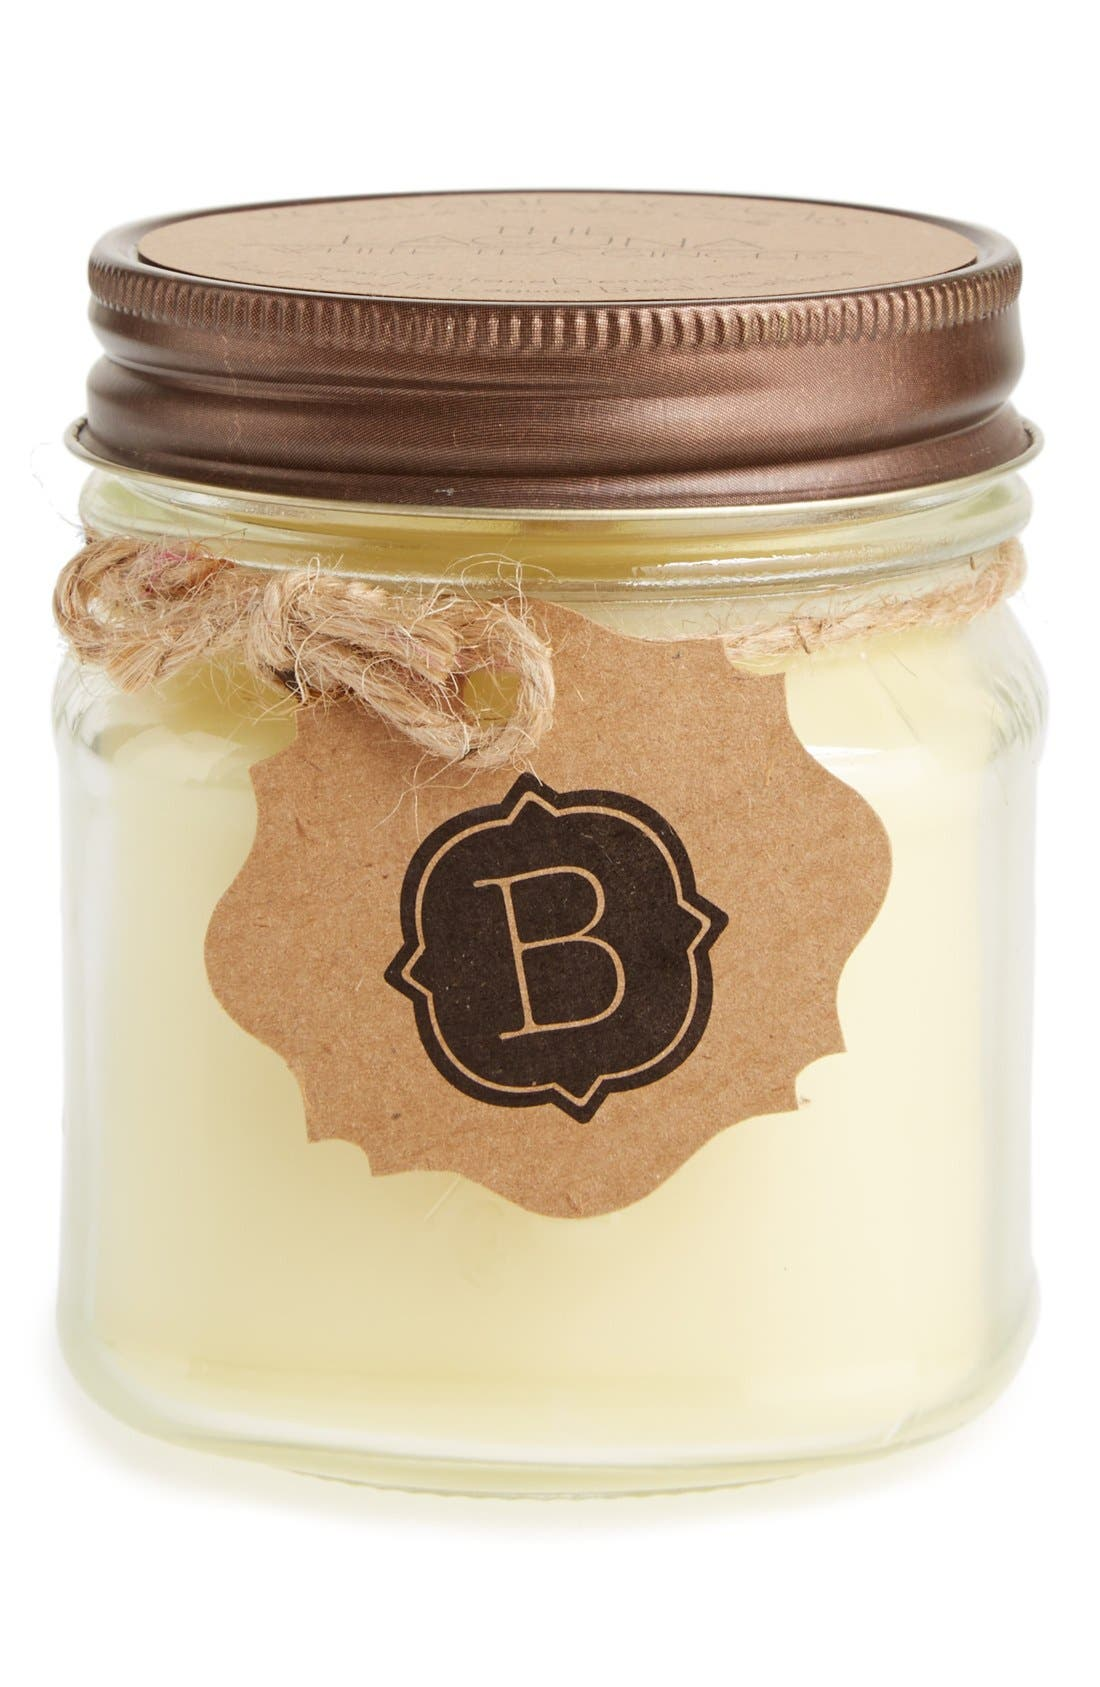 Alternate Image 1 Selected - Montane Designs Personalized Mini Mason Jar White Tea Ginger Candle